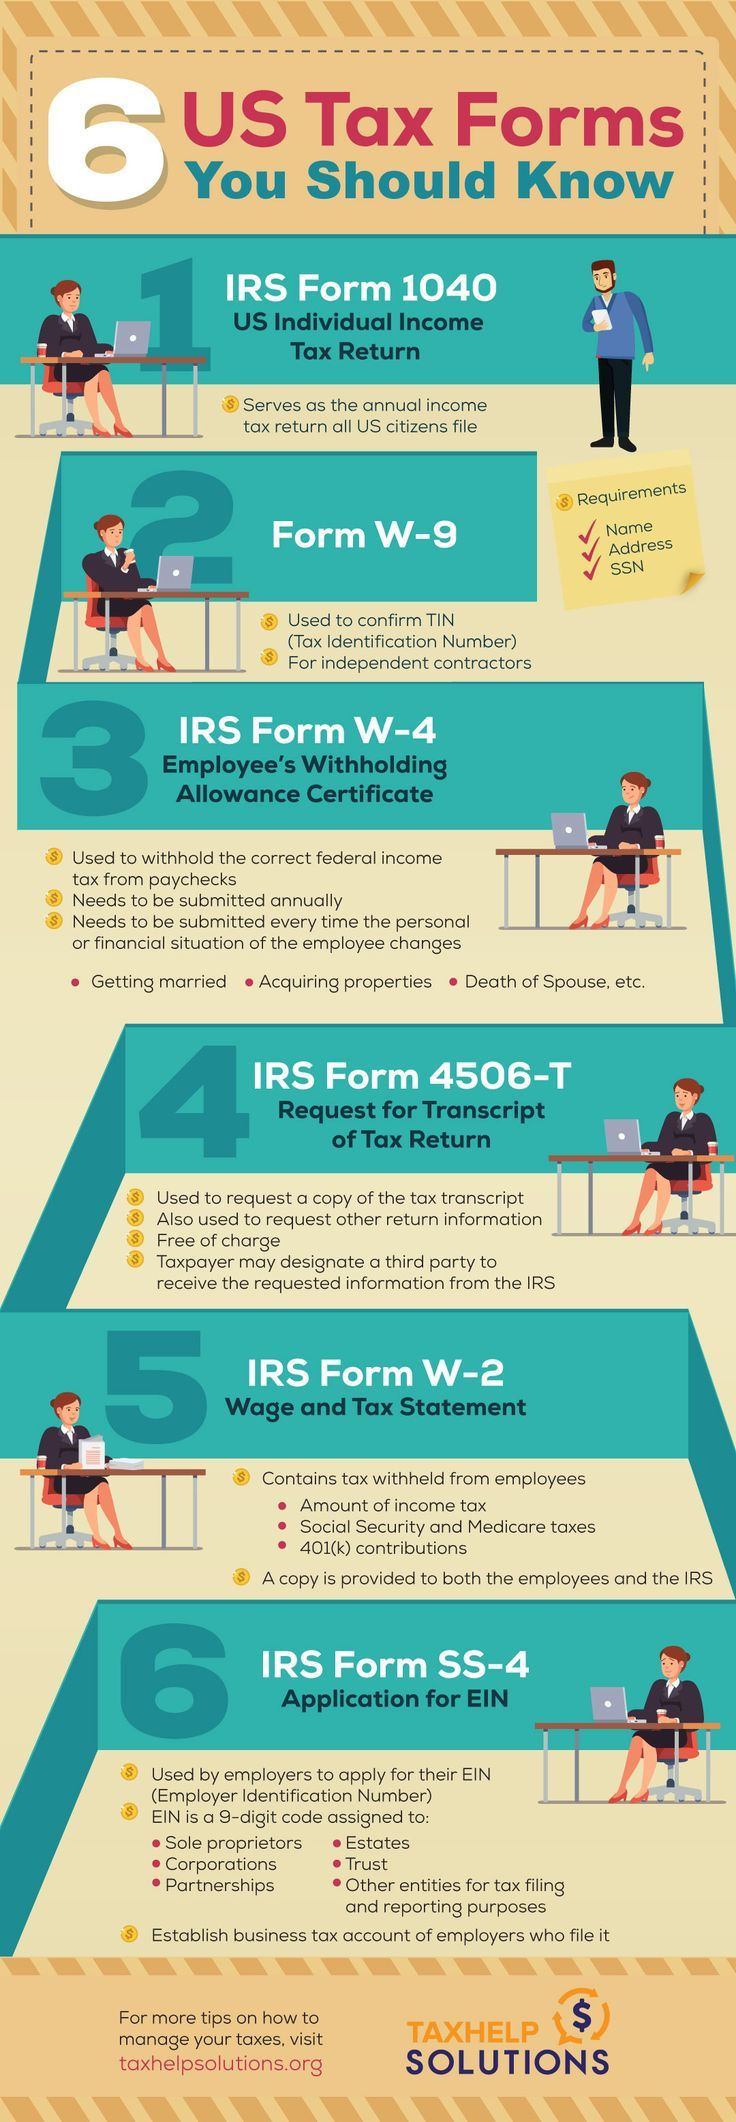 605d6e947aeffd2fd7c1ae2077c0f5e2 - How To Get A Tax Transcript From Irs Online